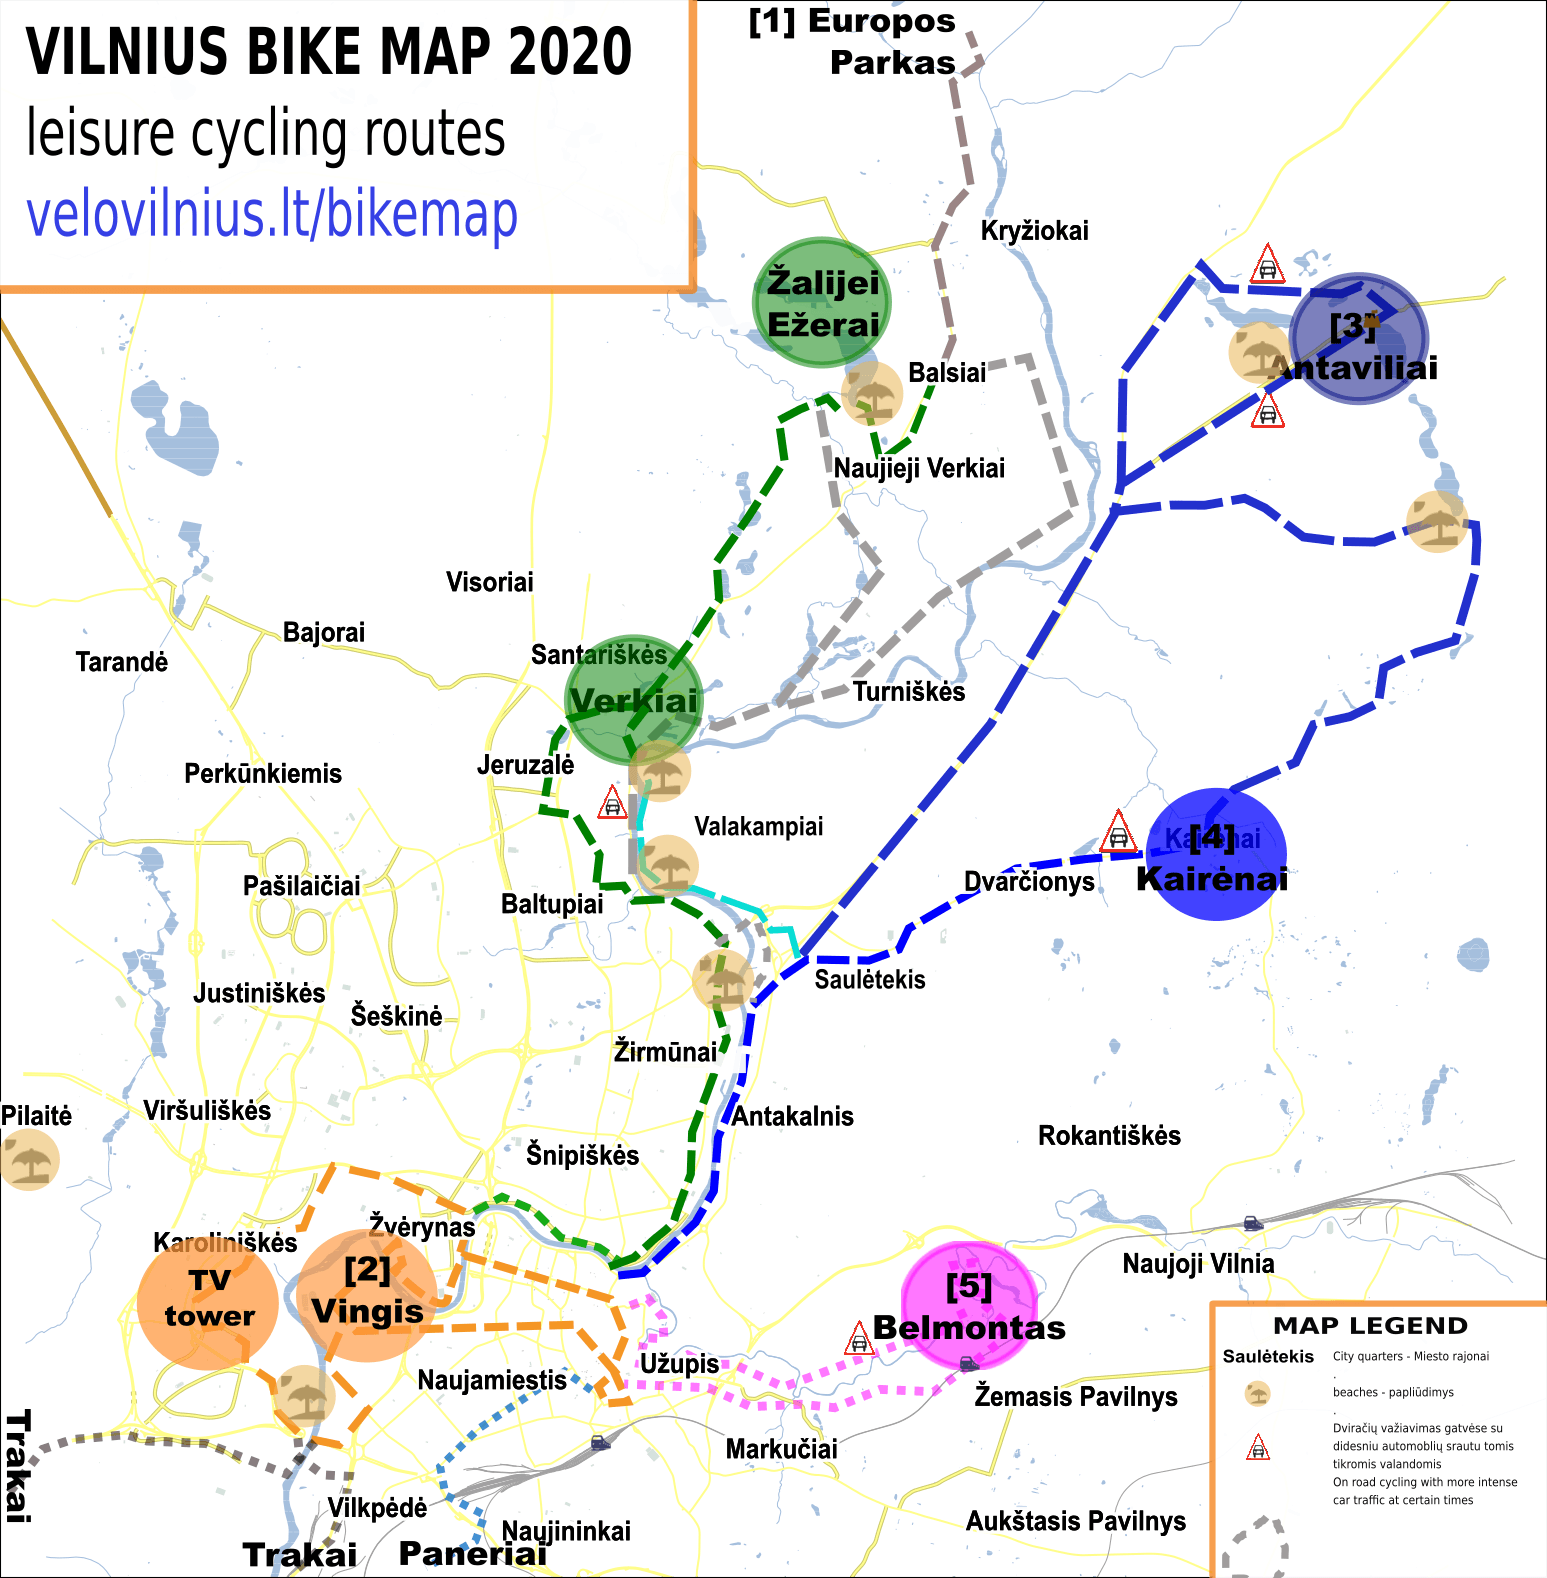 Easy Leisure Cycling in Vilnius city (2020)